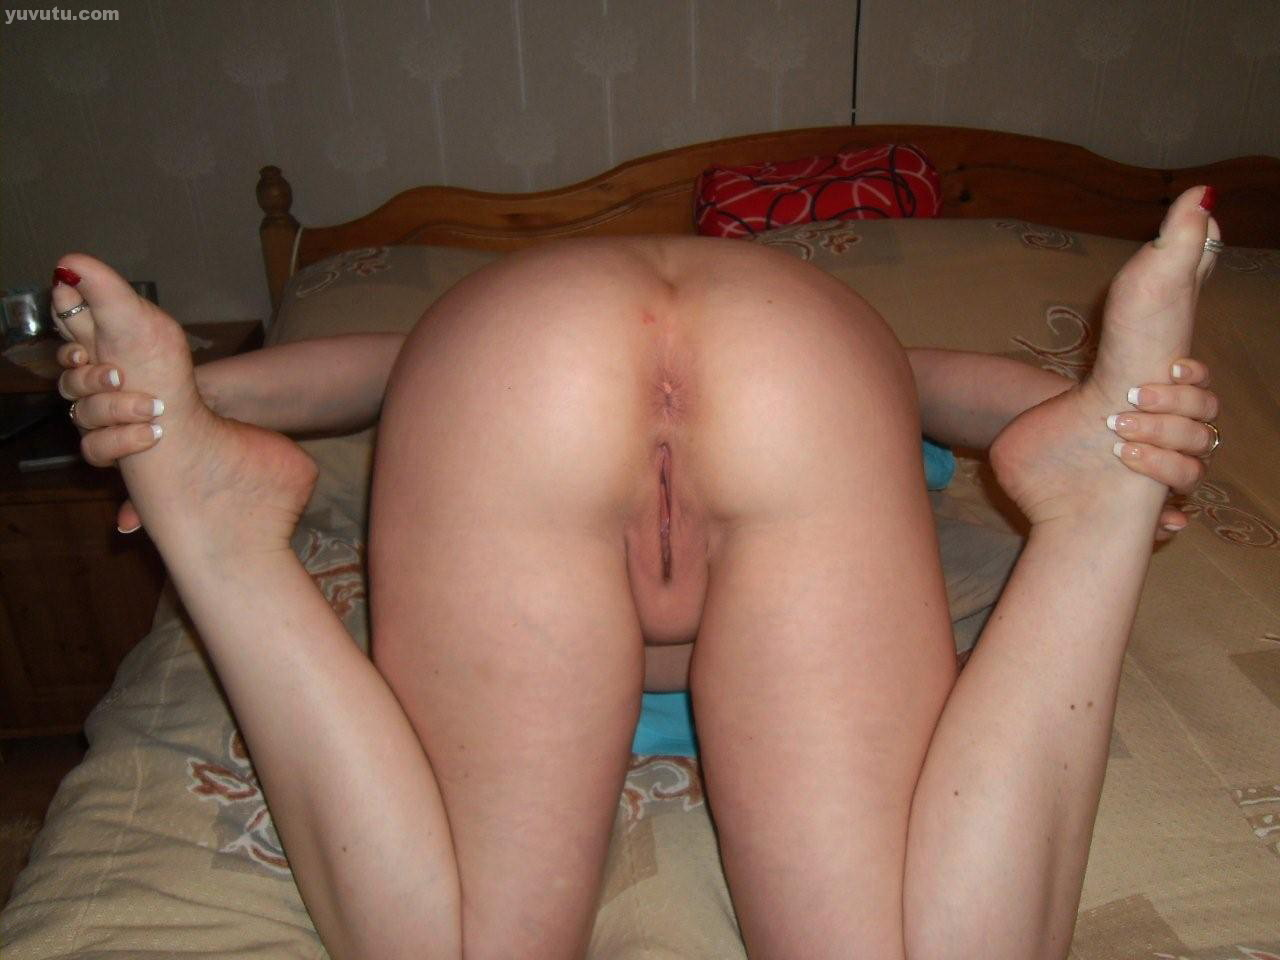 Experienced amateur women